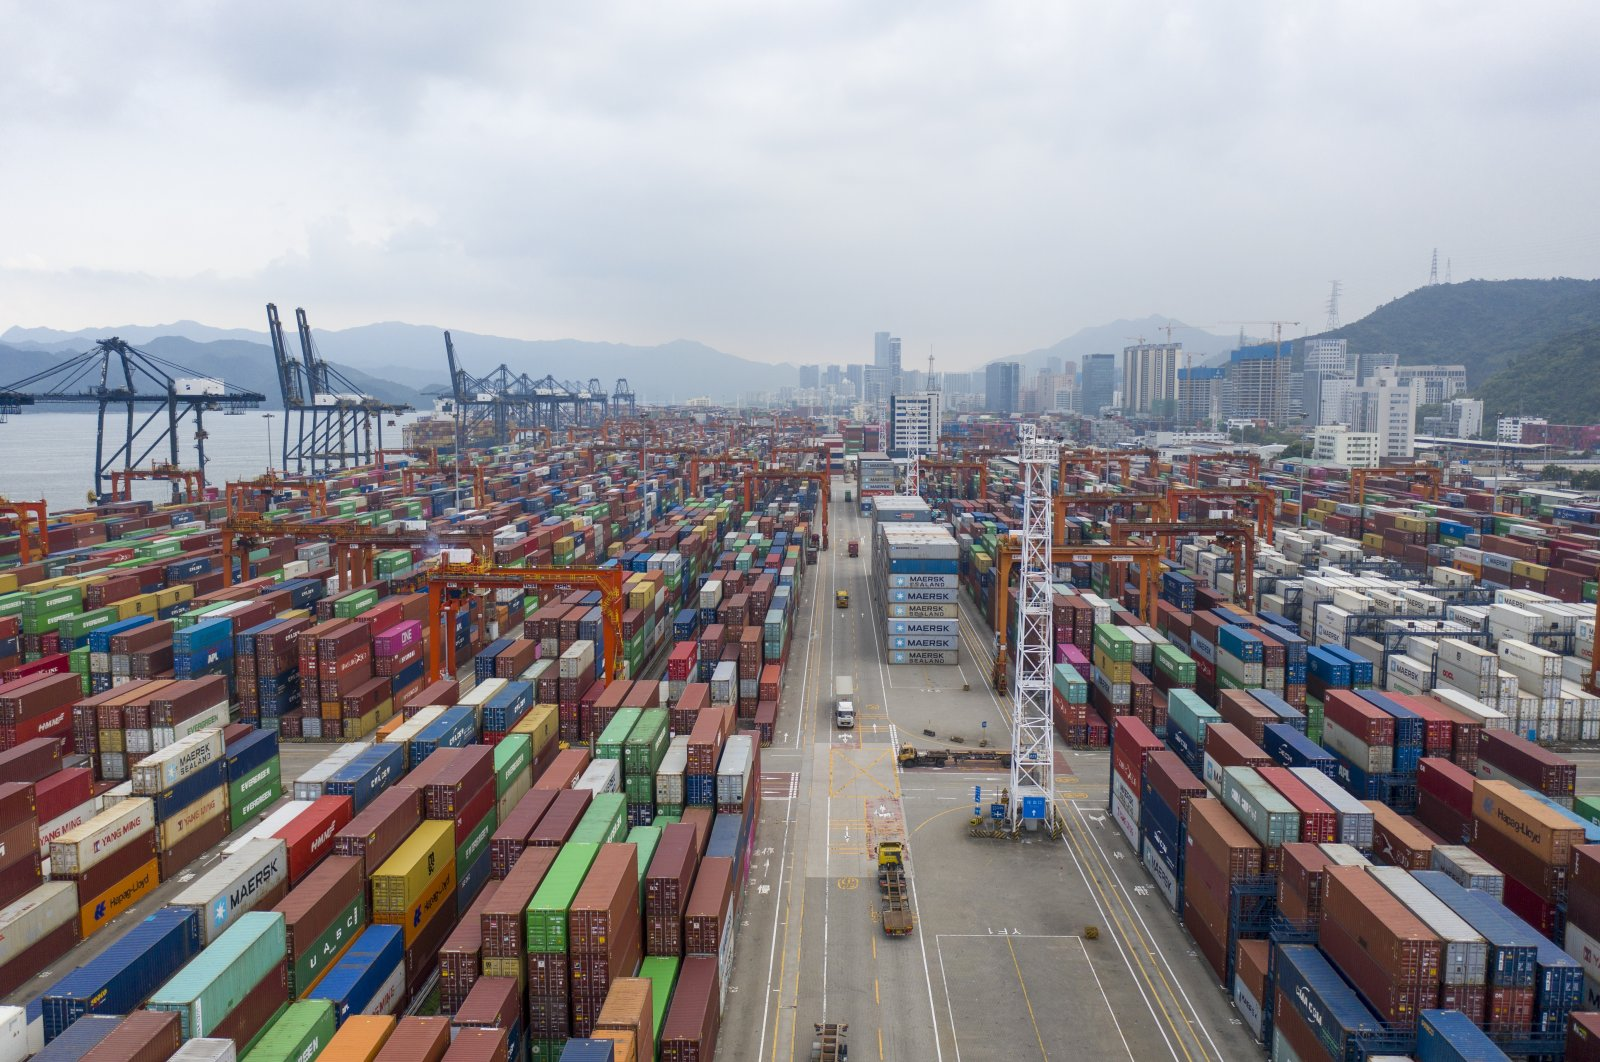 An aerial view of containers sitting stacked at the Yantian International Container Terminals, Shenzhen, Guangdong, China, Aug. 22, 2020. (Photo by Getty Images)